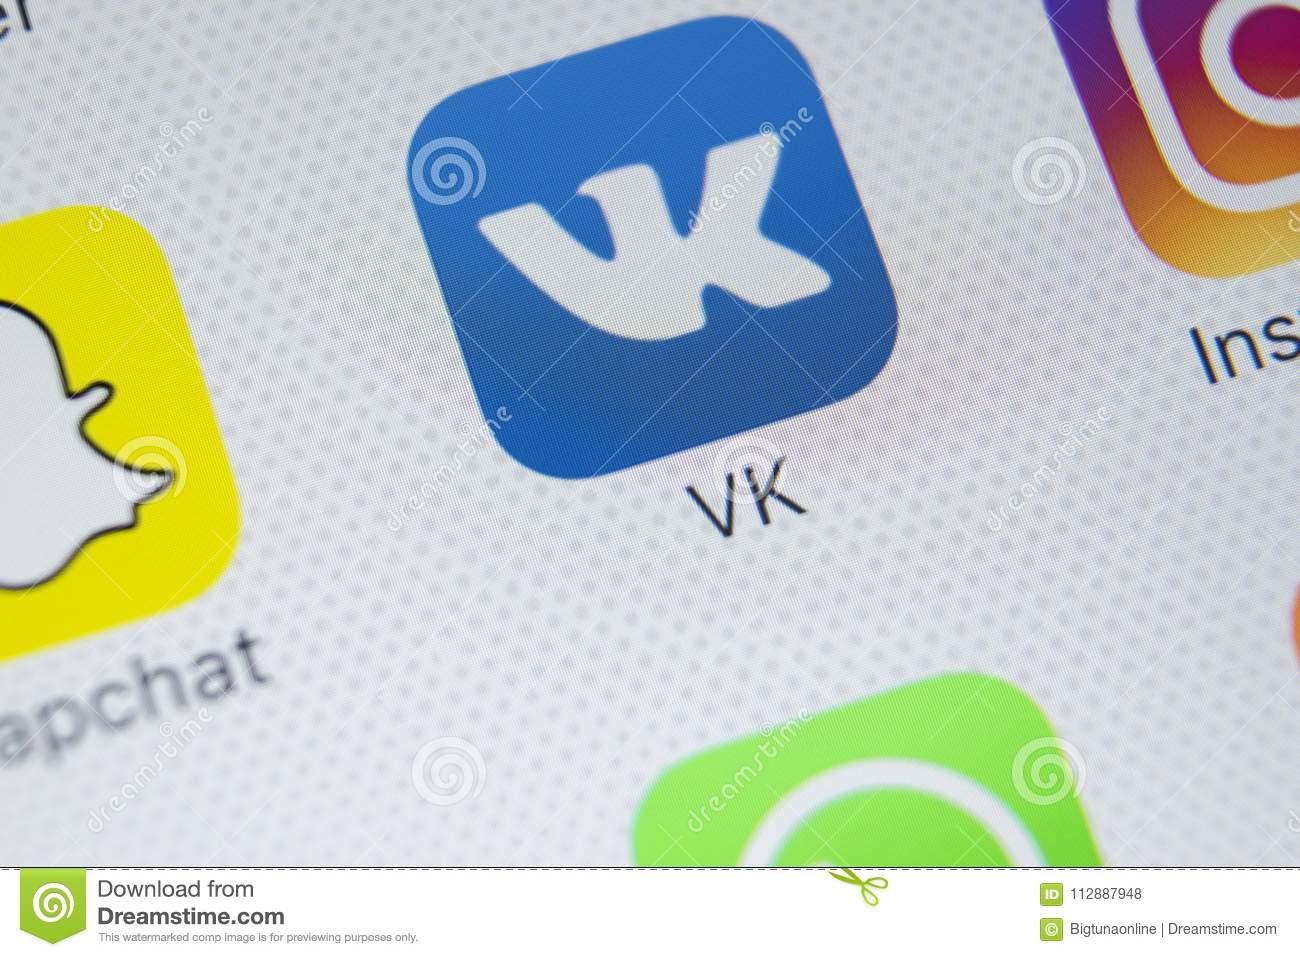 Vkontakte Application Icon On Apple IPhone X Screen Close-up  VK App